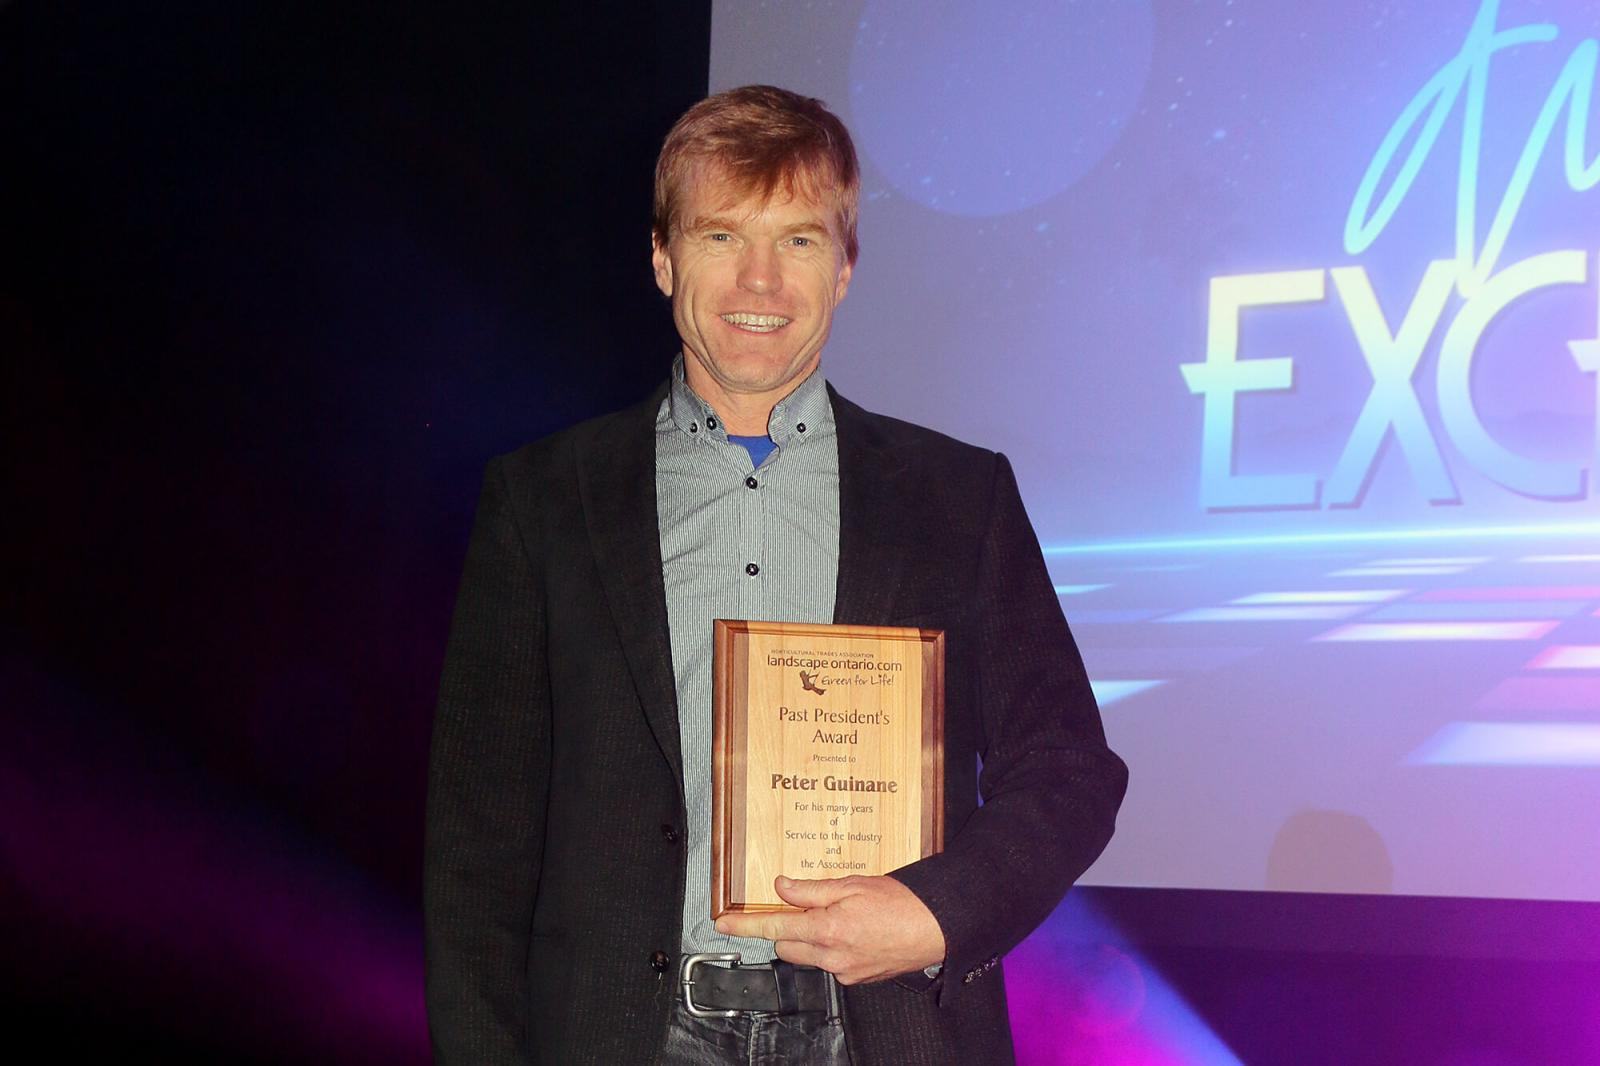 Peter Guinane received the LO Past President's award at the 2018 Awards of Excellence ceremony.